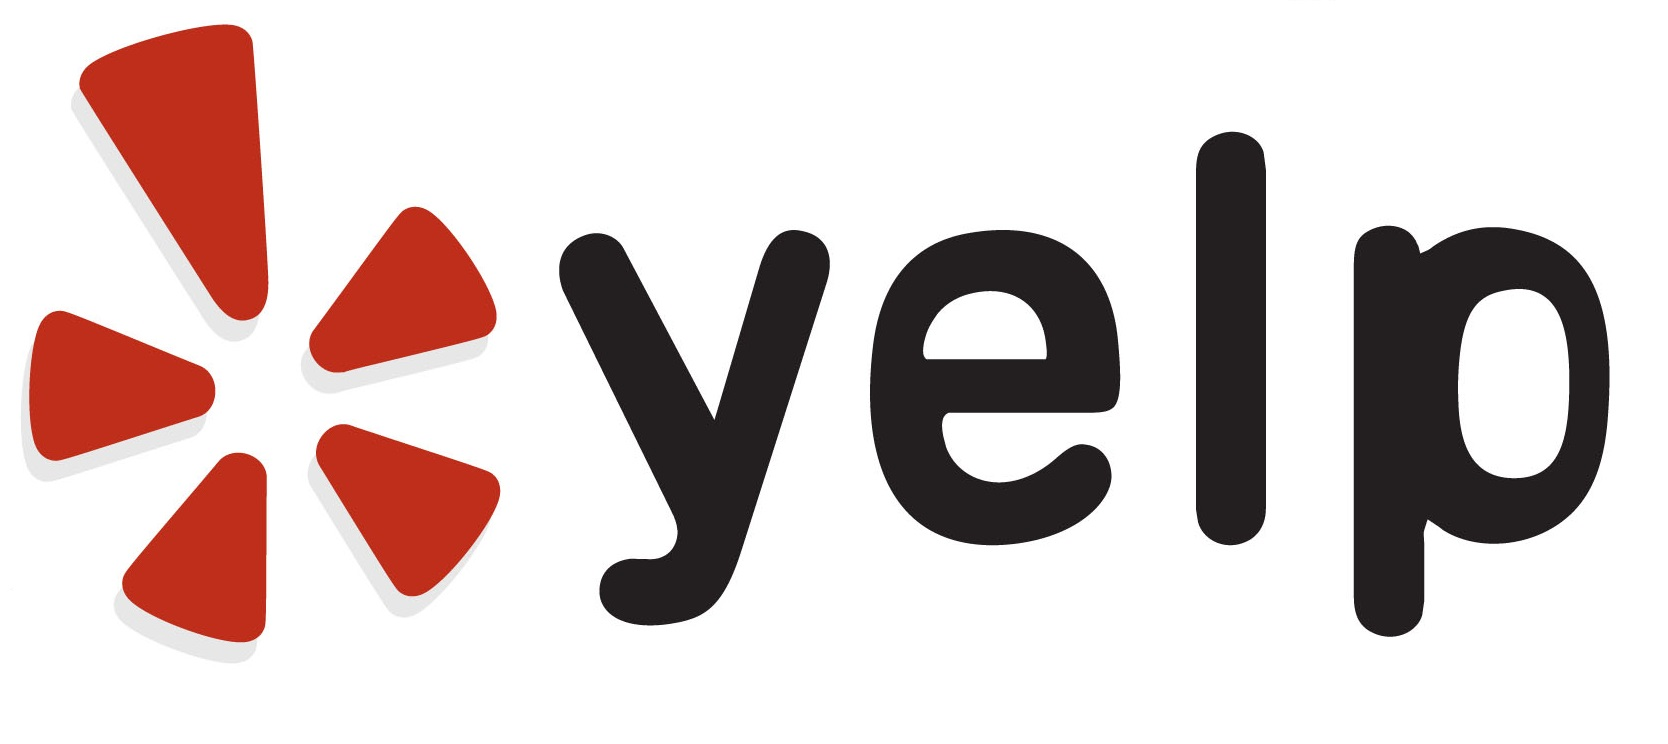 The Buzz is Huge on $YELP – Yelp Inc. – Is it a Buy or Sell?